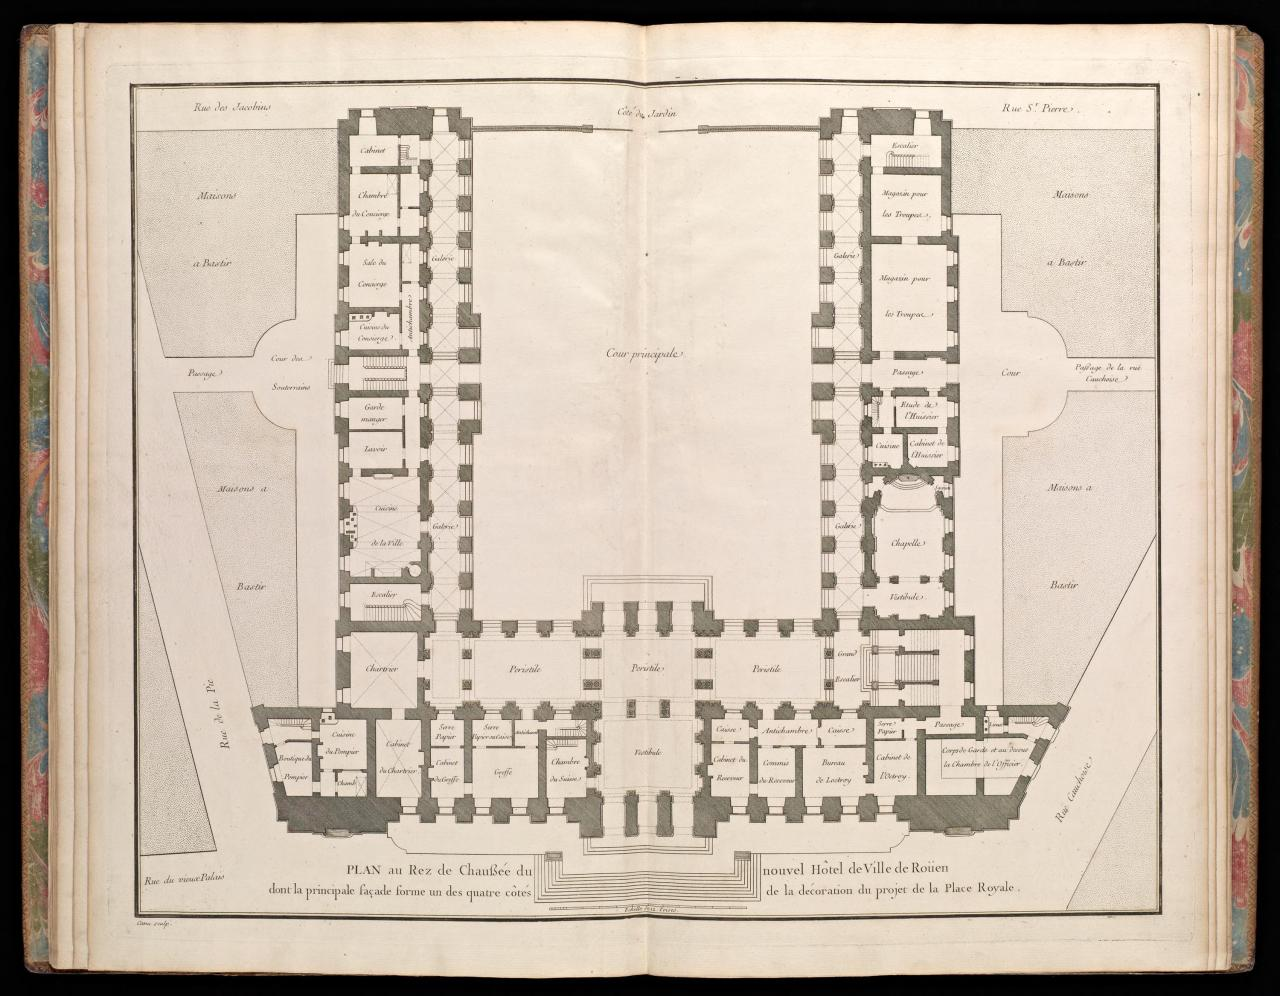 Ground floor plan of the new City Hall, Rouen